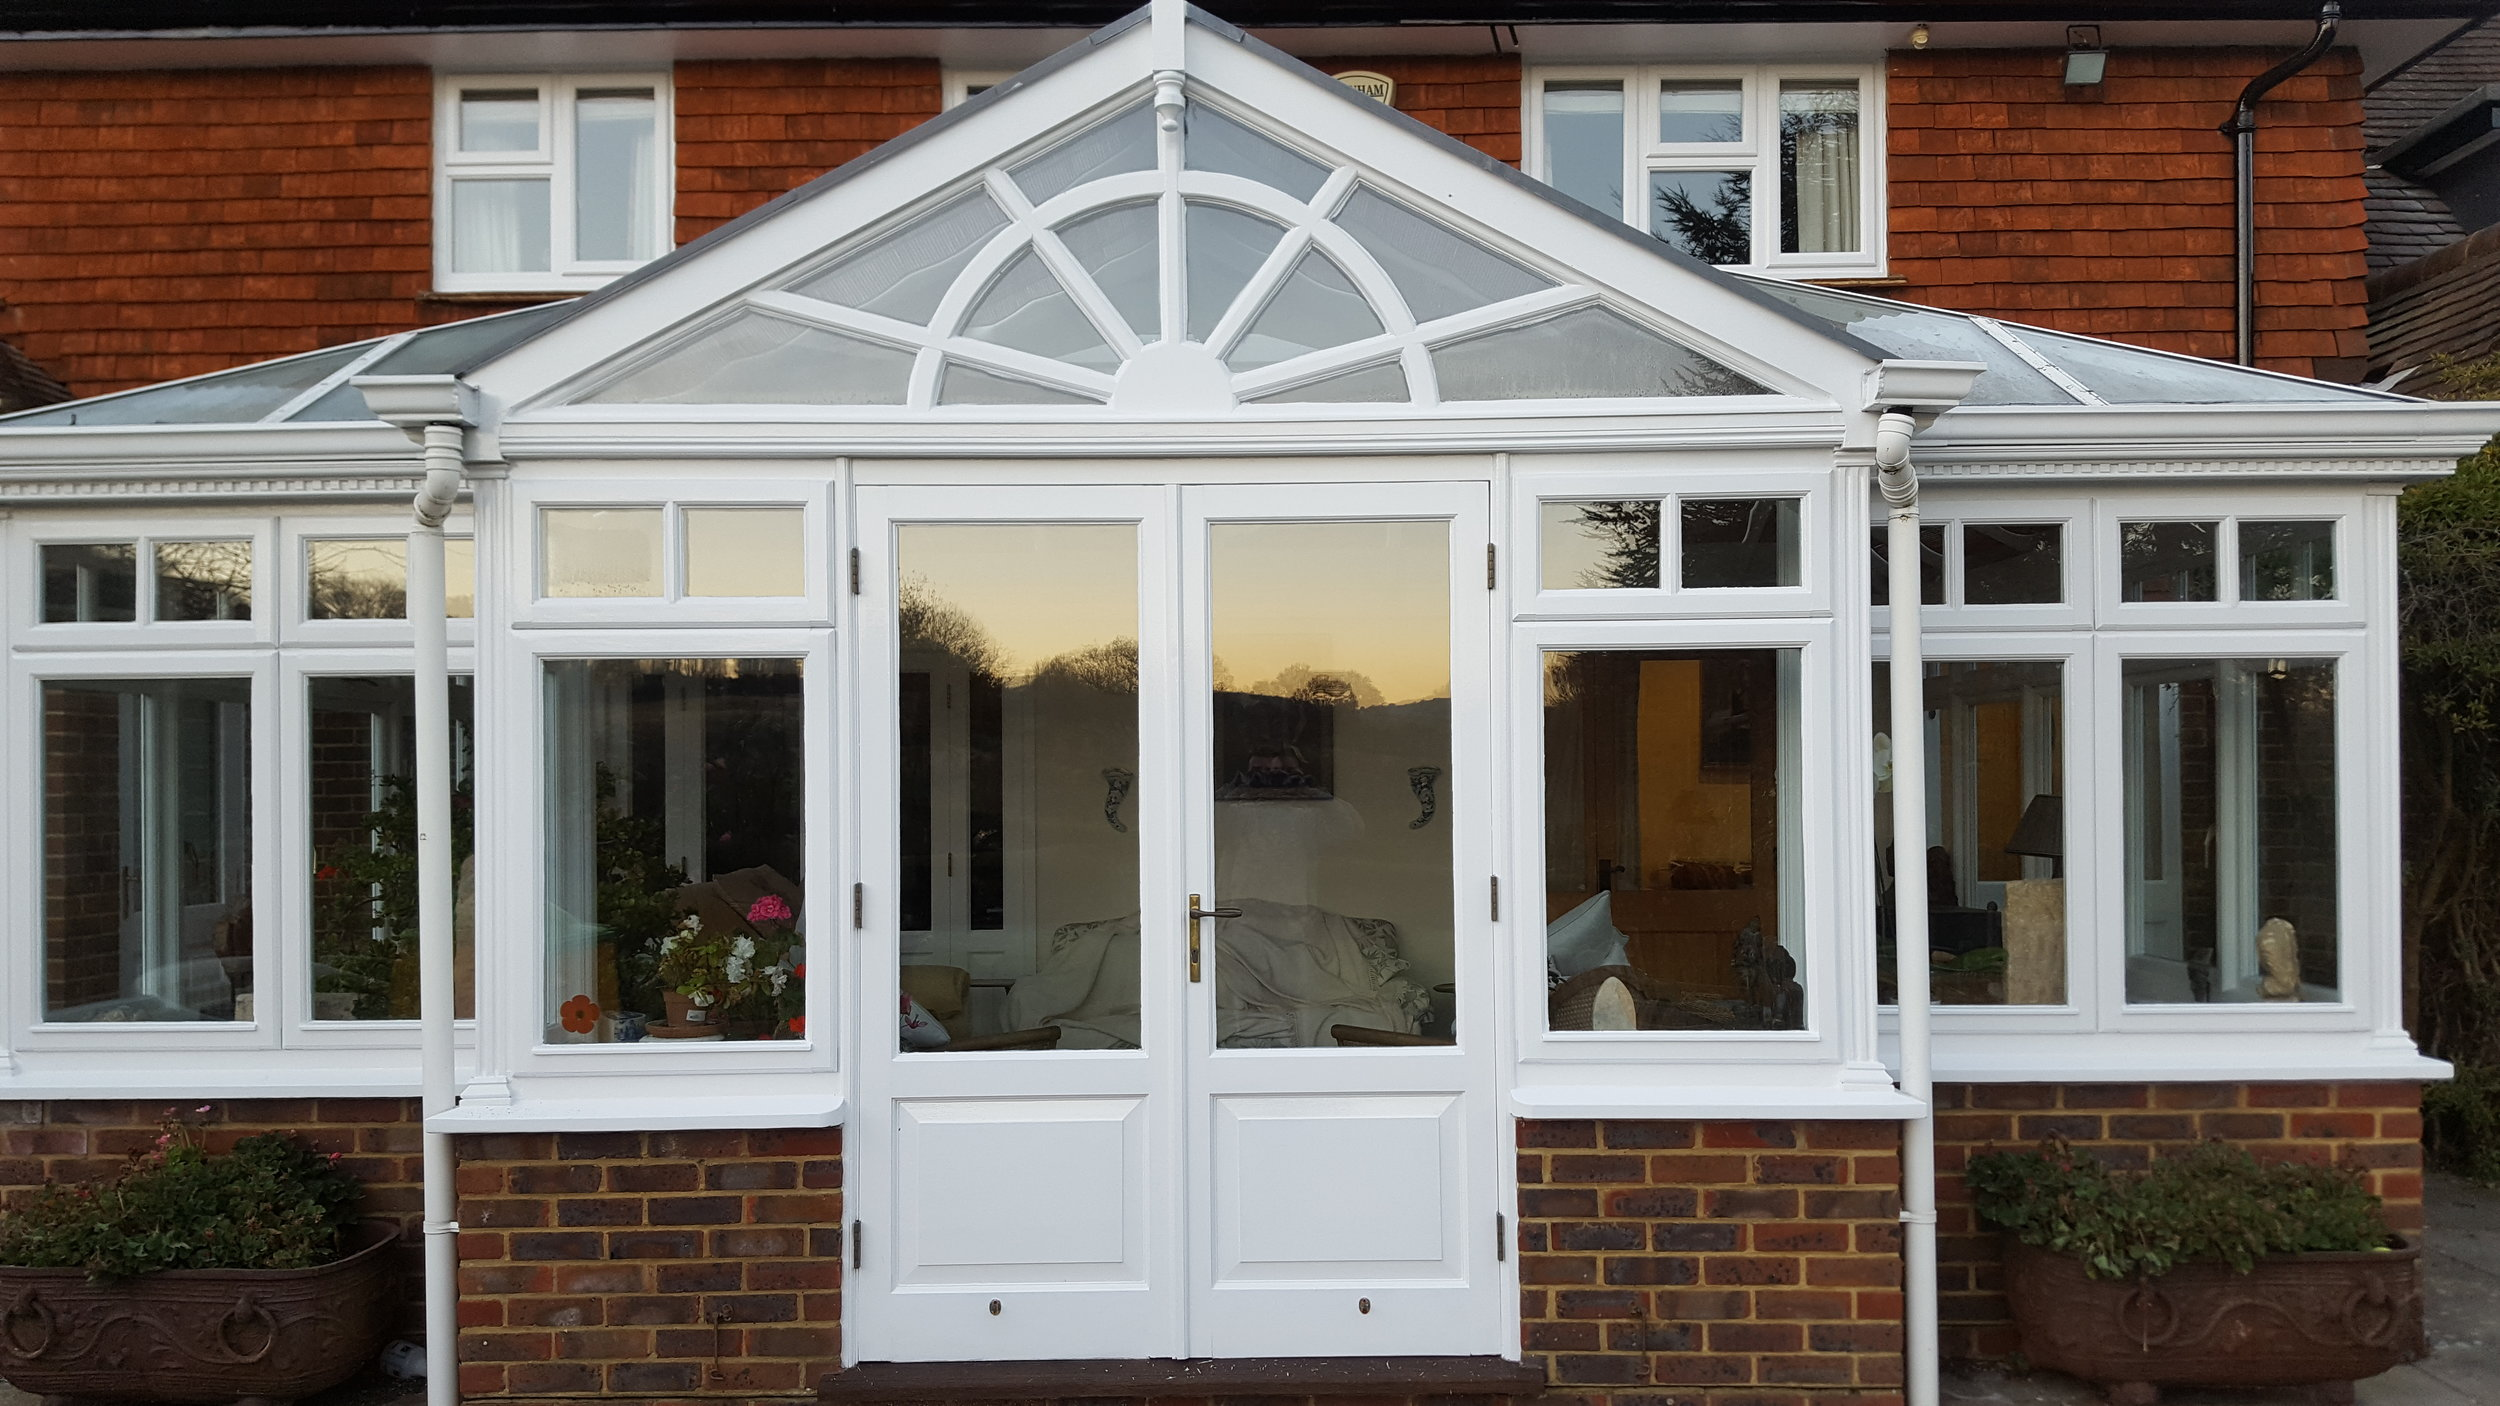 Conservatory and fascias painted by Dorking Decorators